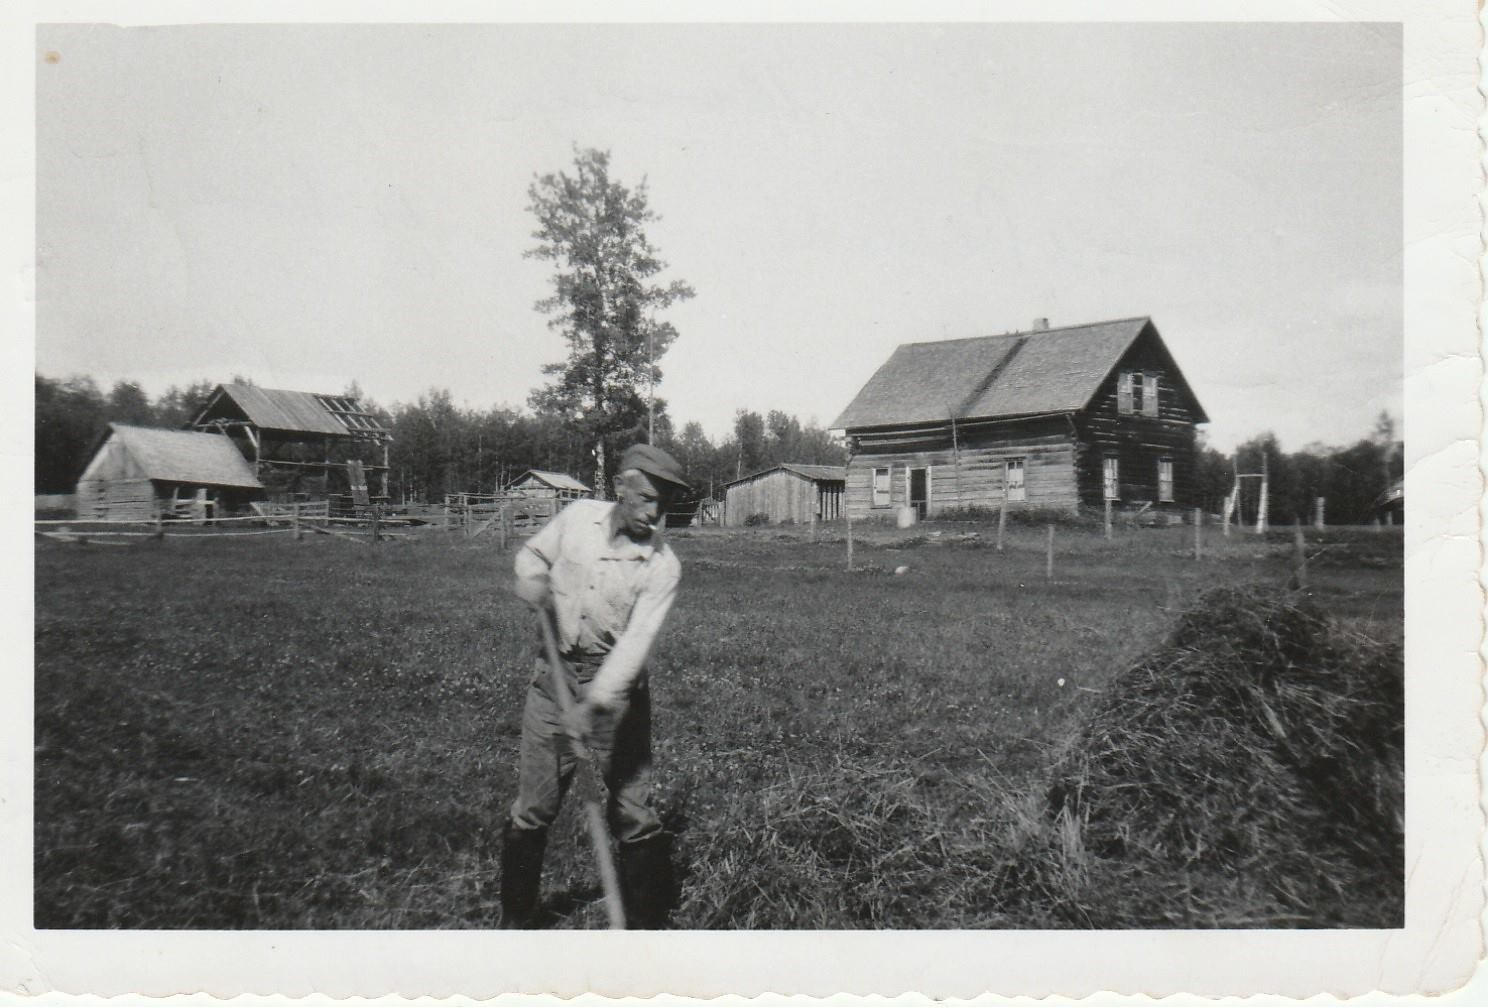 a happy uncle Jan, the first Smid to emigrate  on his farm property in Alberta Canada